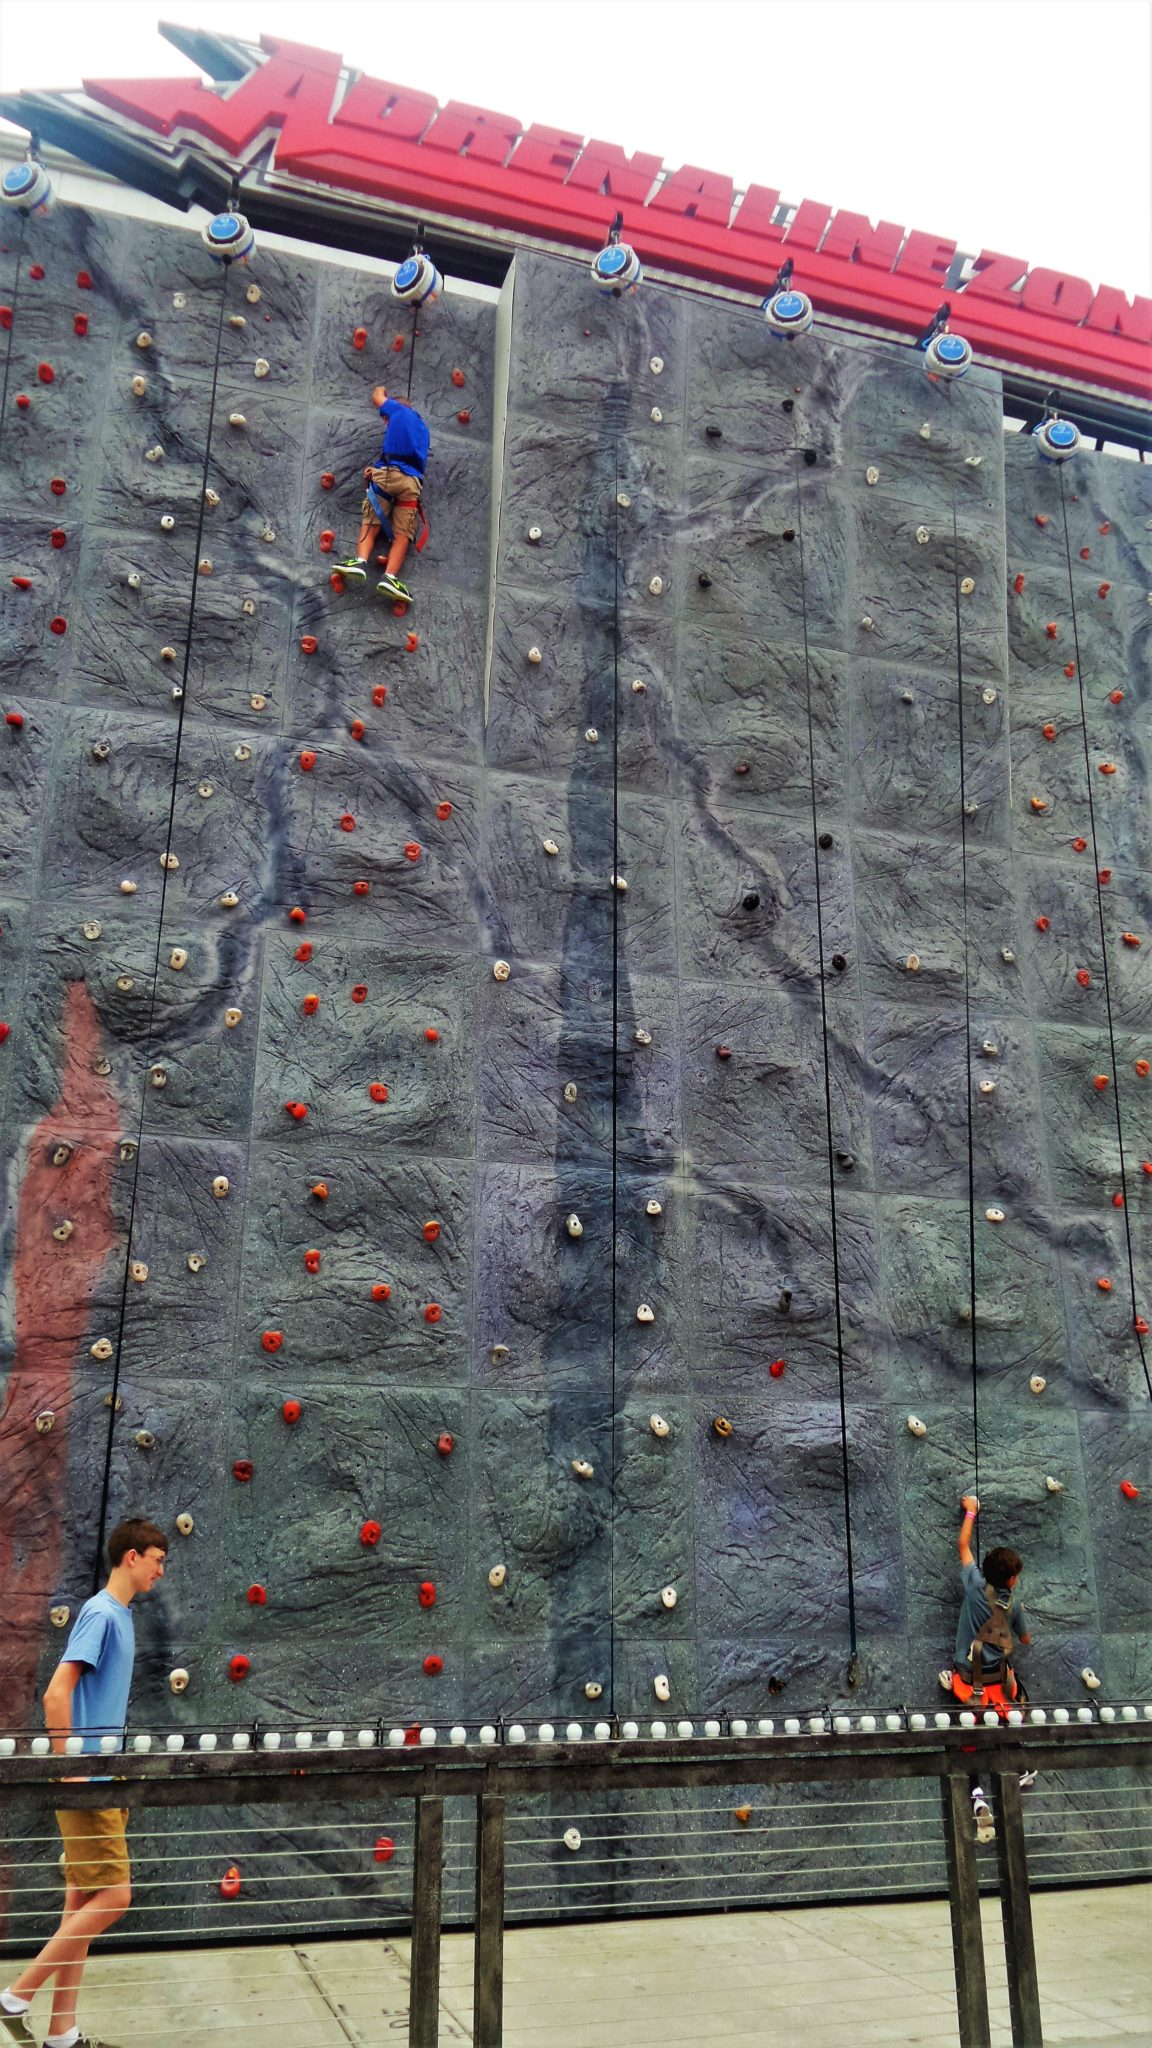 Rock Climbing at Belmont Park, Mission Beach, San Diego